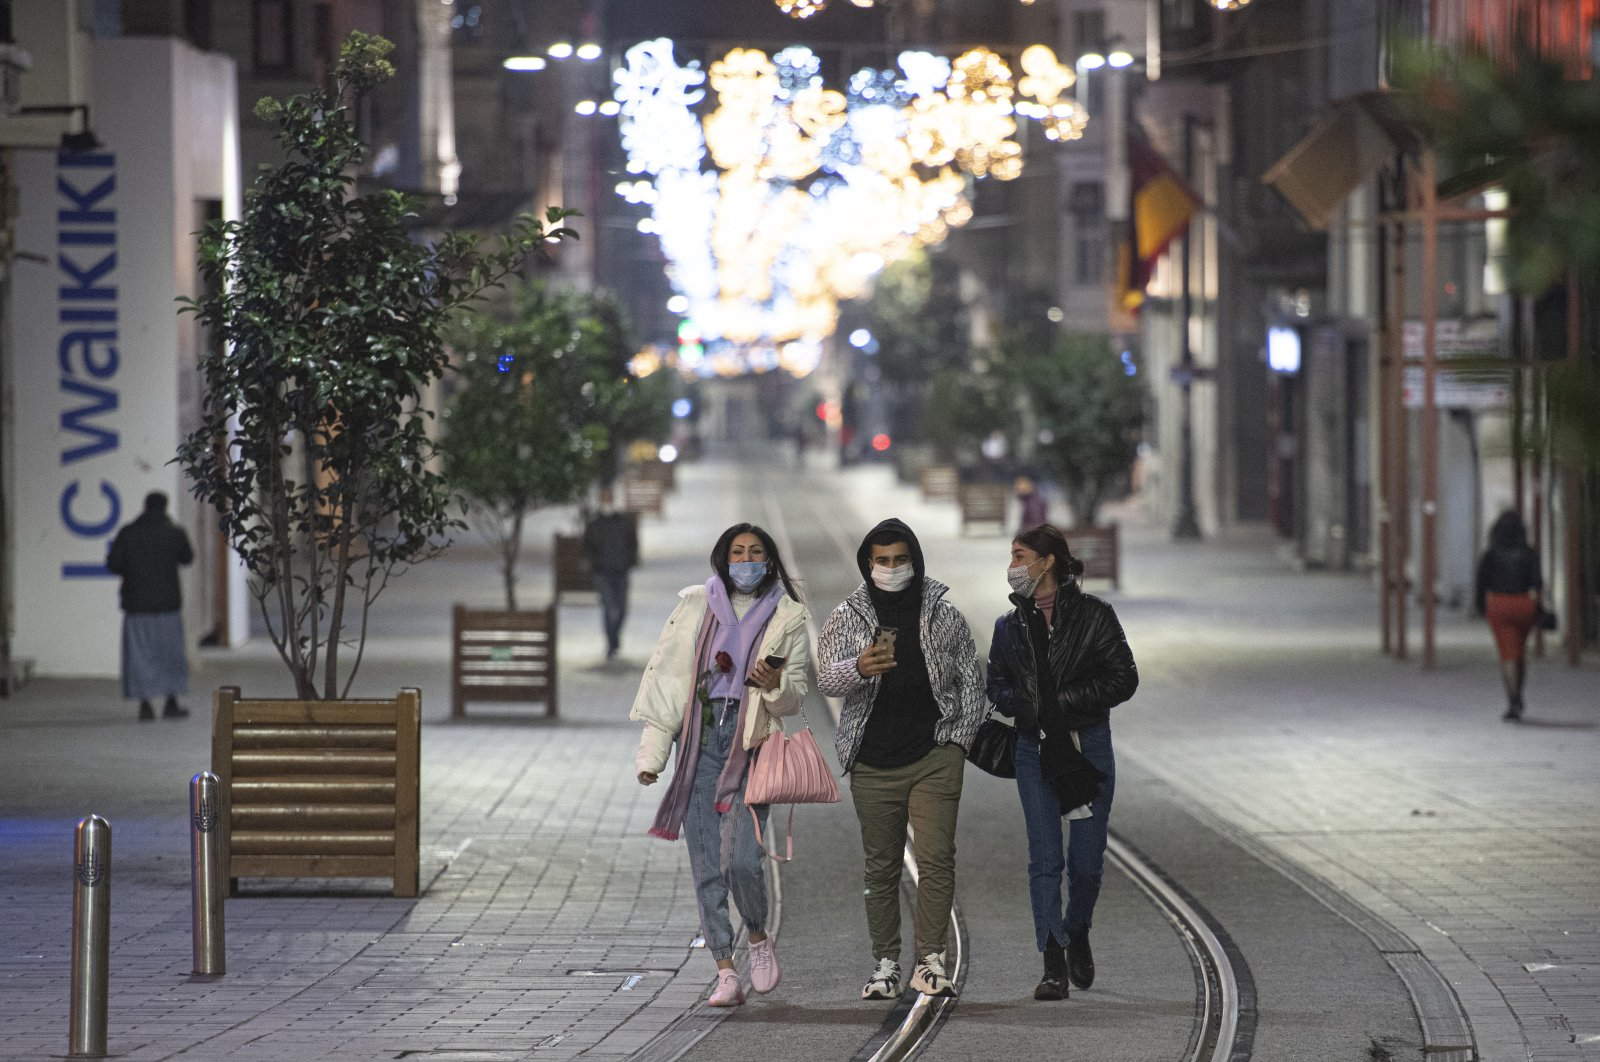 People walk on Istiklal street, the main shopping street in Istanbul, during a curfew on Dec. 1, 2020. (AP Photo)